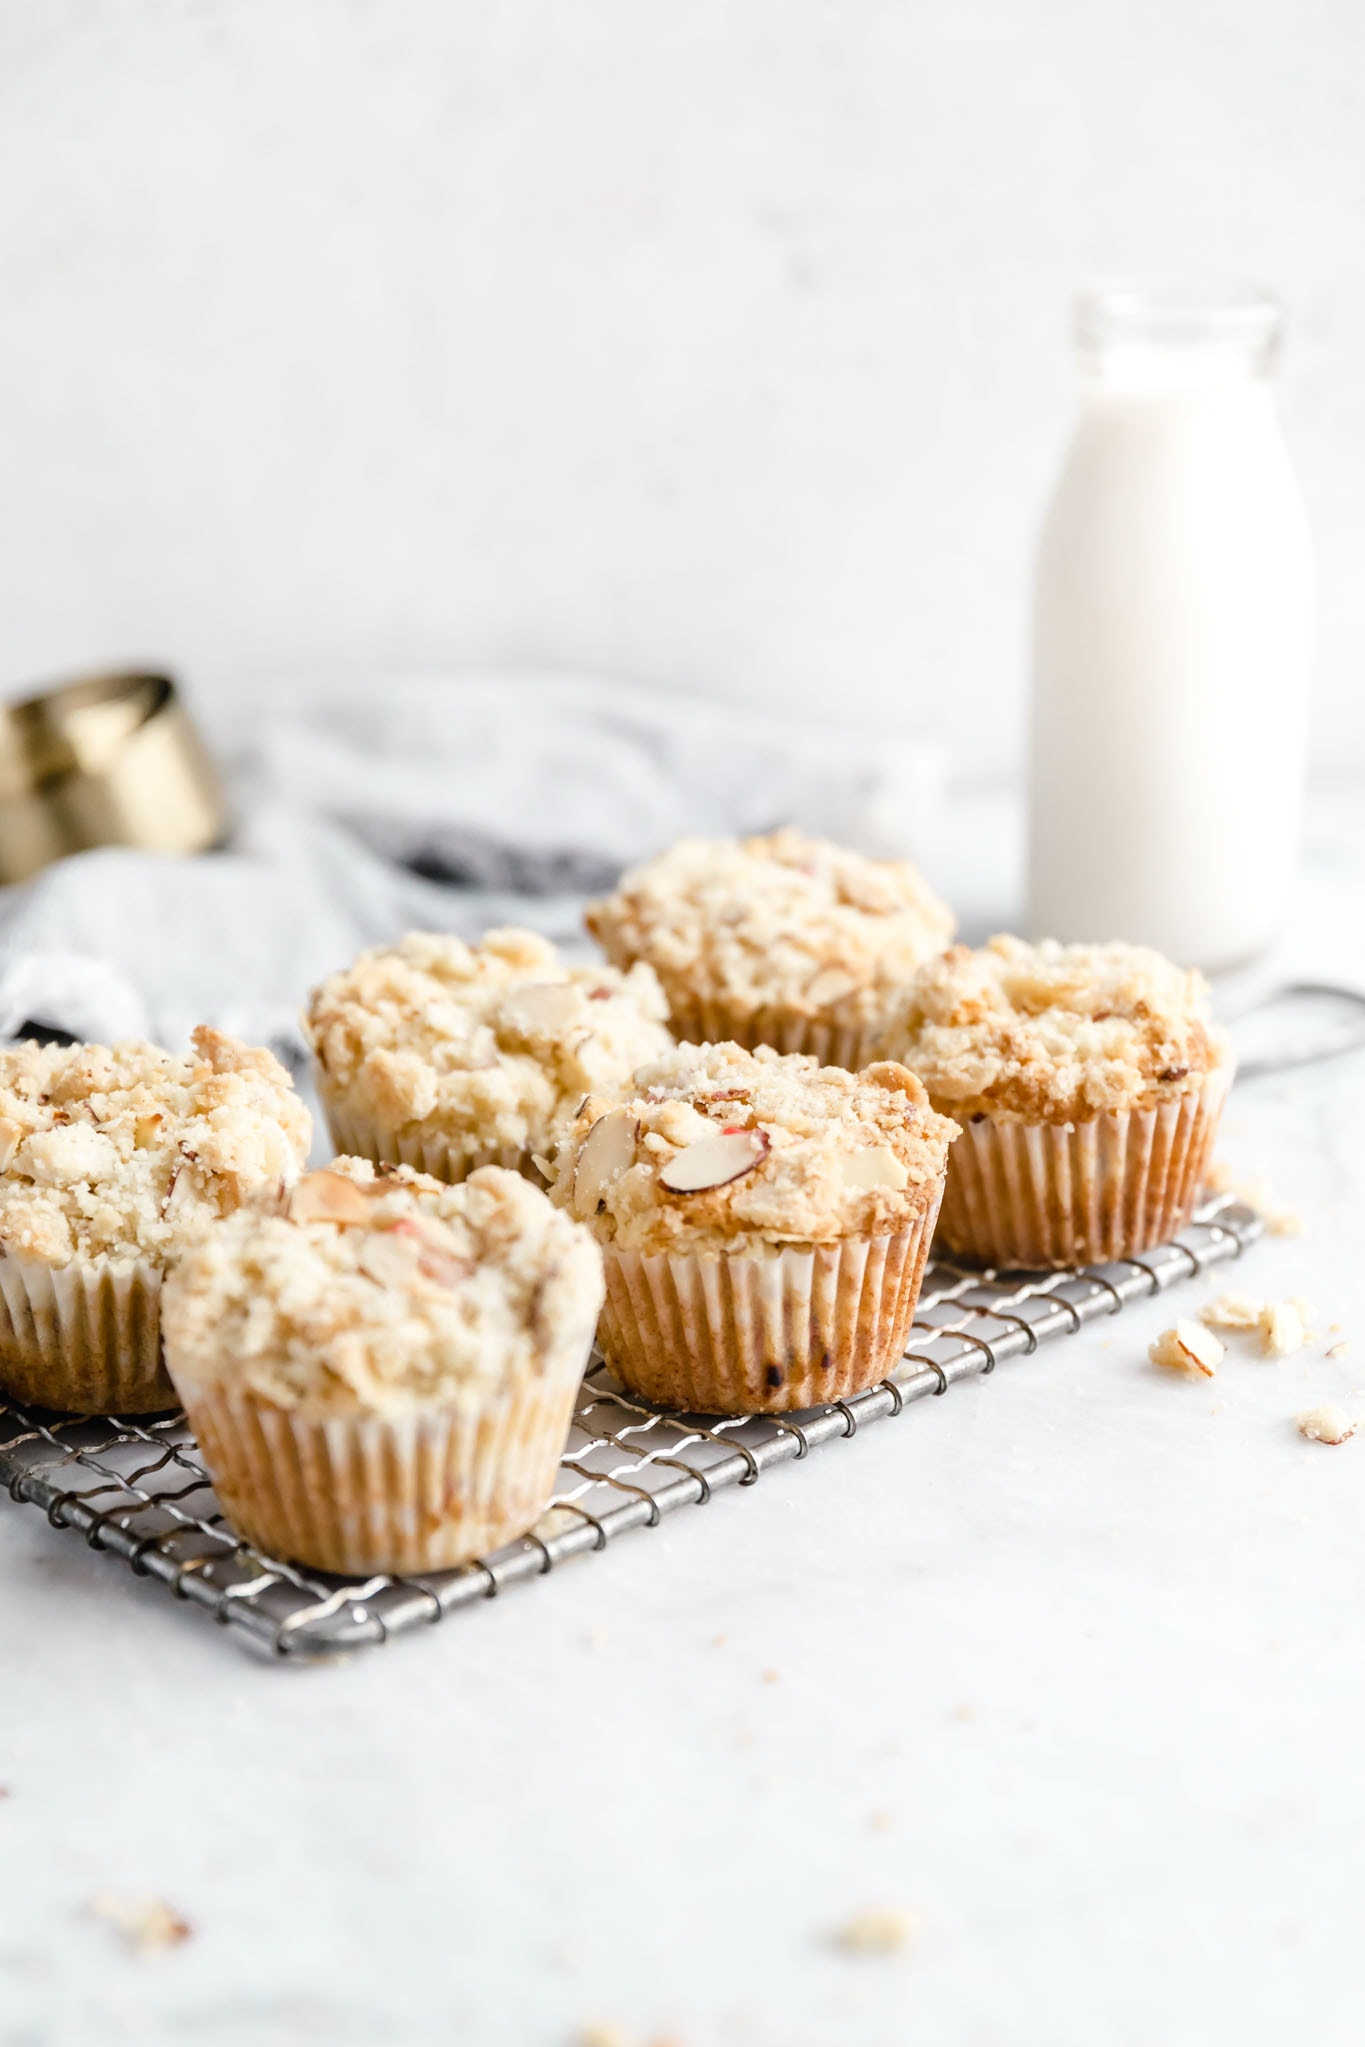 Looking for your new favorite spring muffin recipe? We gotcha covered. These Almond rhubarb muffins are tender, moist and packed with chunks of rhubarb. YUM